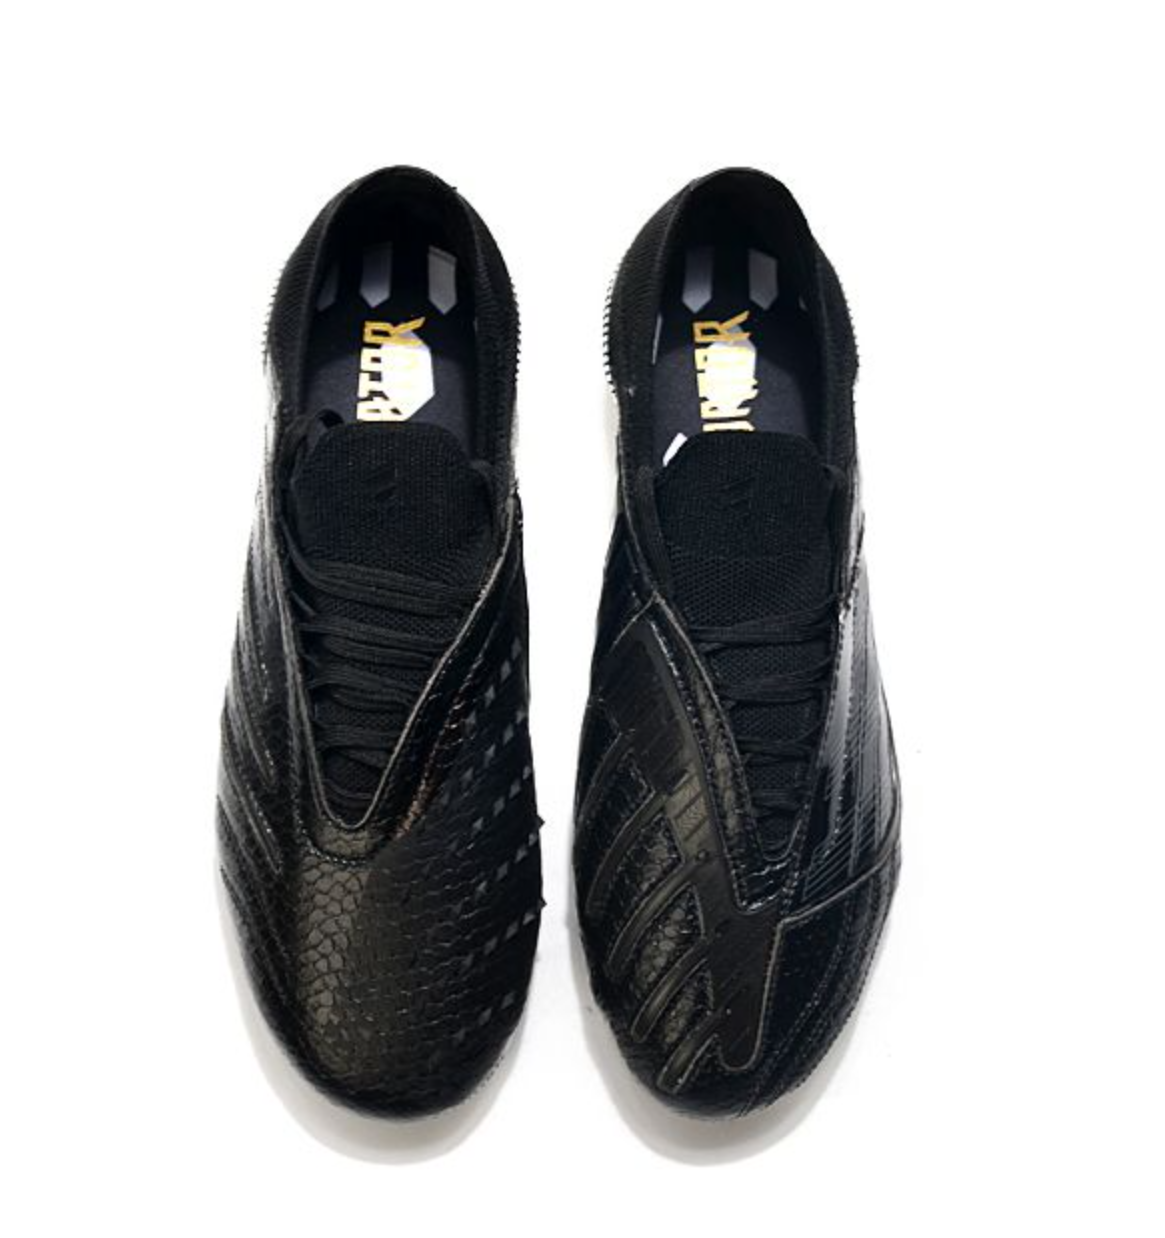 Adidas Predator Archive Limited Edition FG Core Black – the Most Powerful One